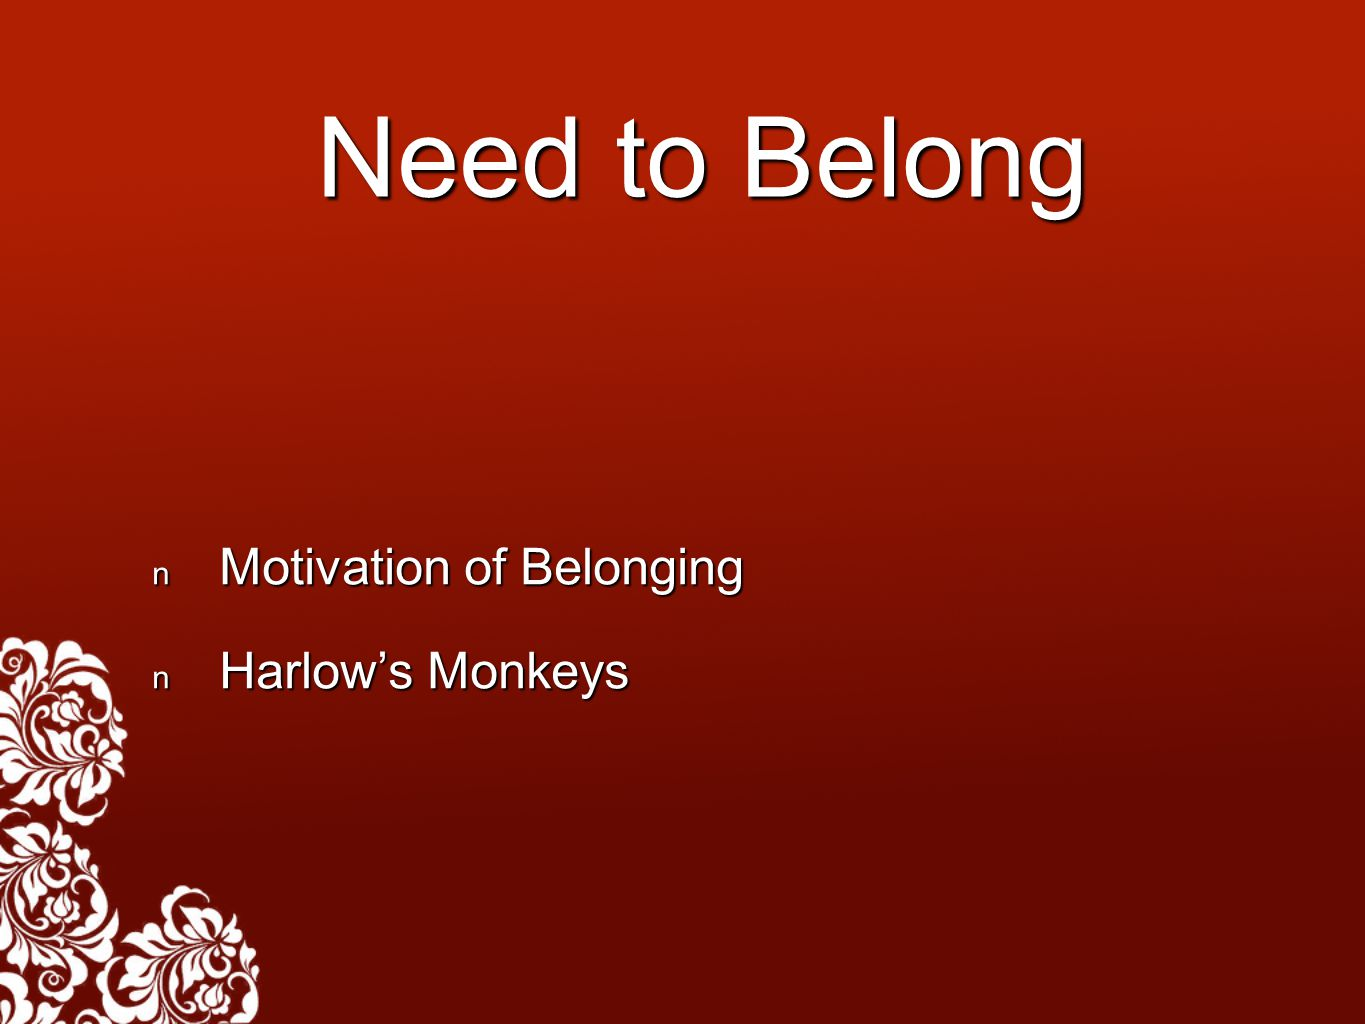 Need to Belong Motivation of Belonging Motivation of Belonging Harlow's Monkeys Harlow's Monkeys